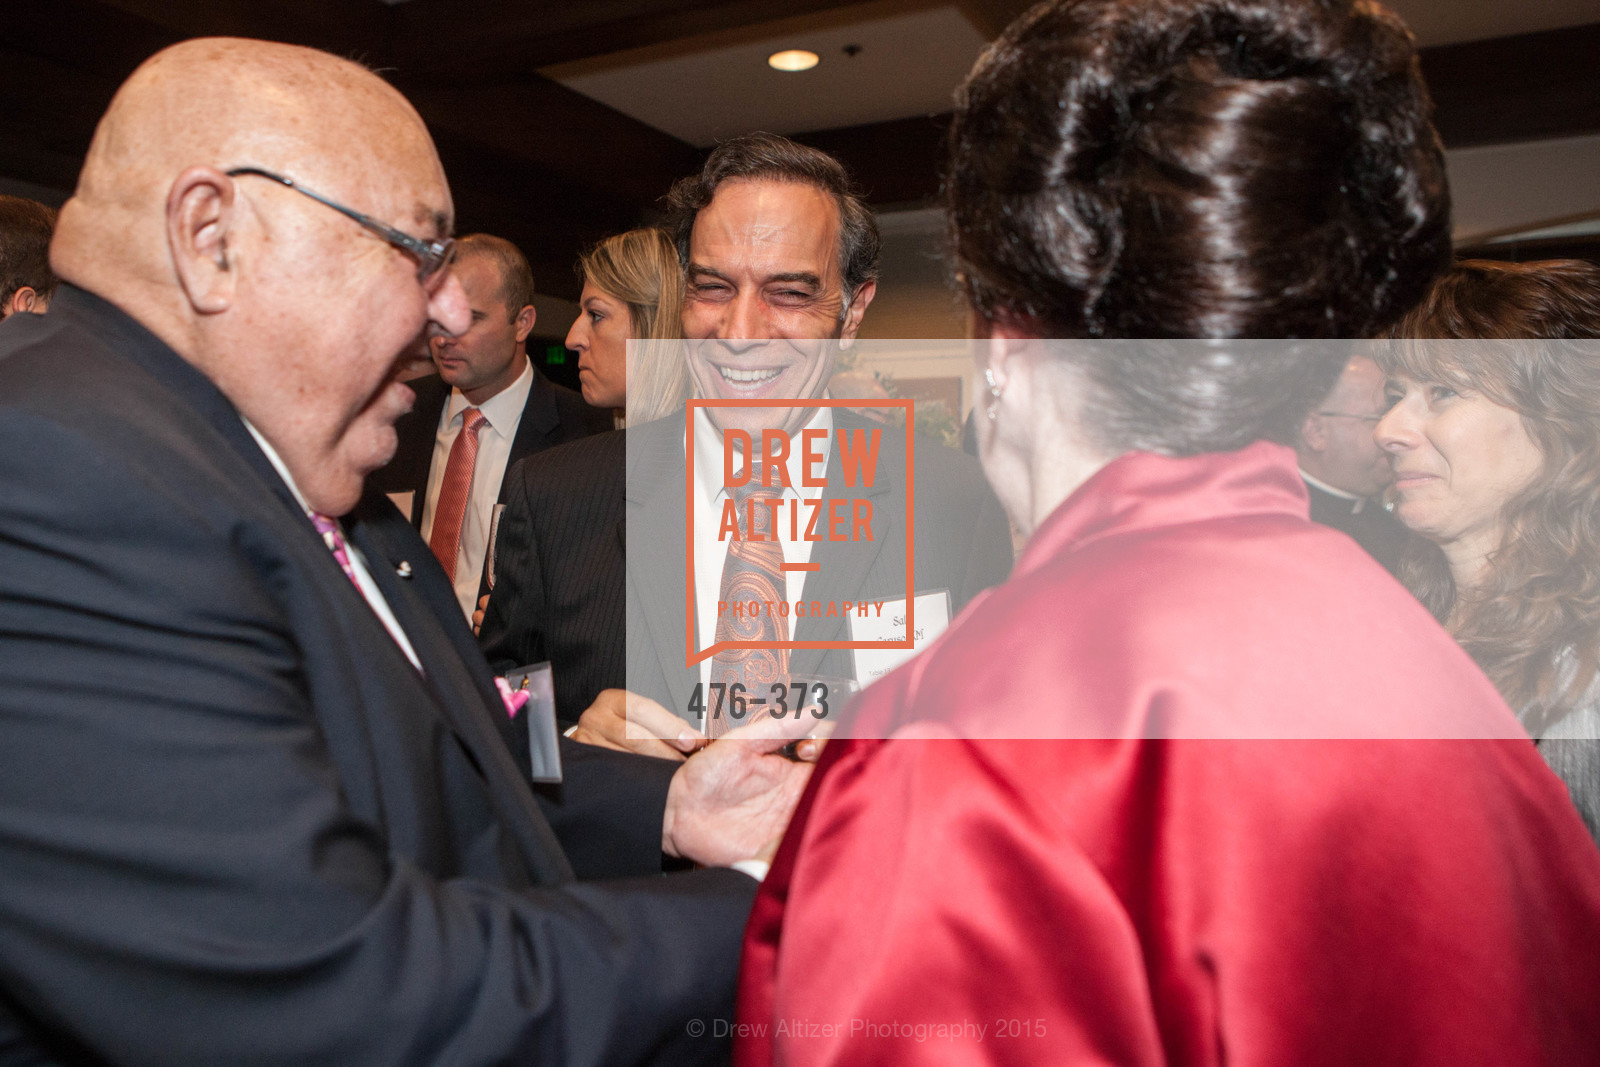 Tony Sanchez-Corea, Sal Caruso, Lucille Sanchez-Corea, Sovereign Order of Malta Presents: A Knight for Champions, 7th Annual Silver Chalice Awards Dinner, St. Francis Yacht Club. 99 Yacht Rd, October 13th, 2015,Drew Altizer, Drew Altizer Photography, full-service agency, private events, San Francisco photographer, photographer california